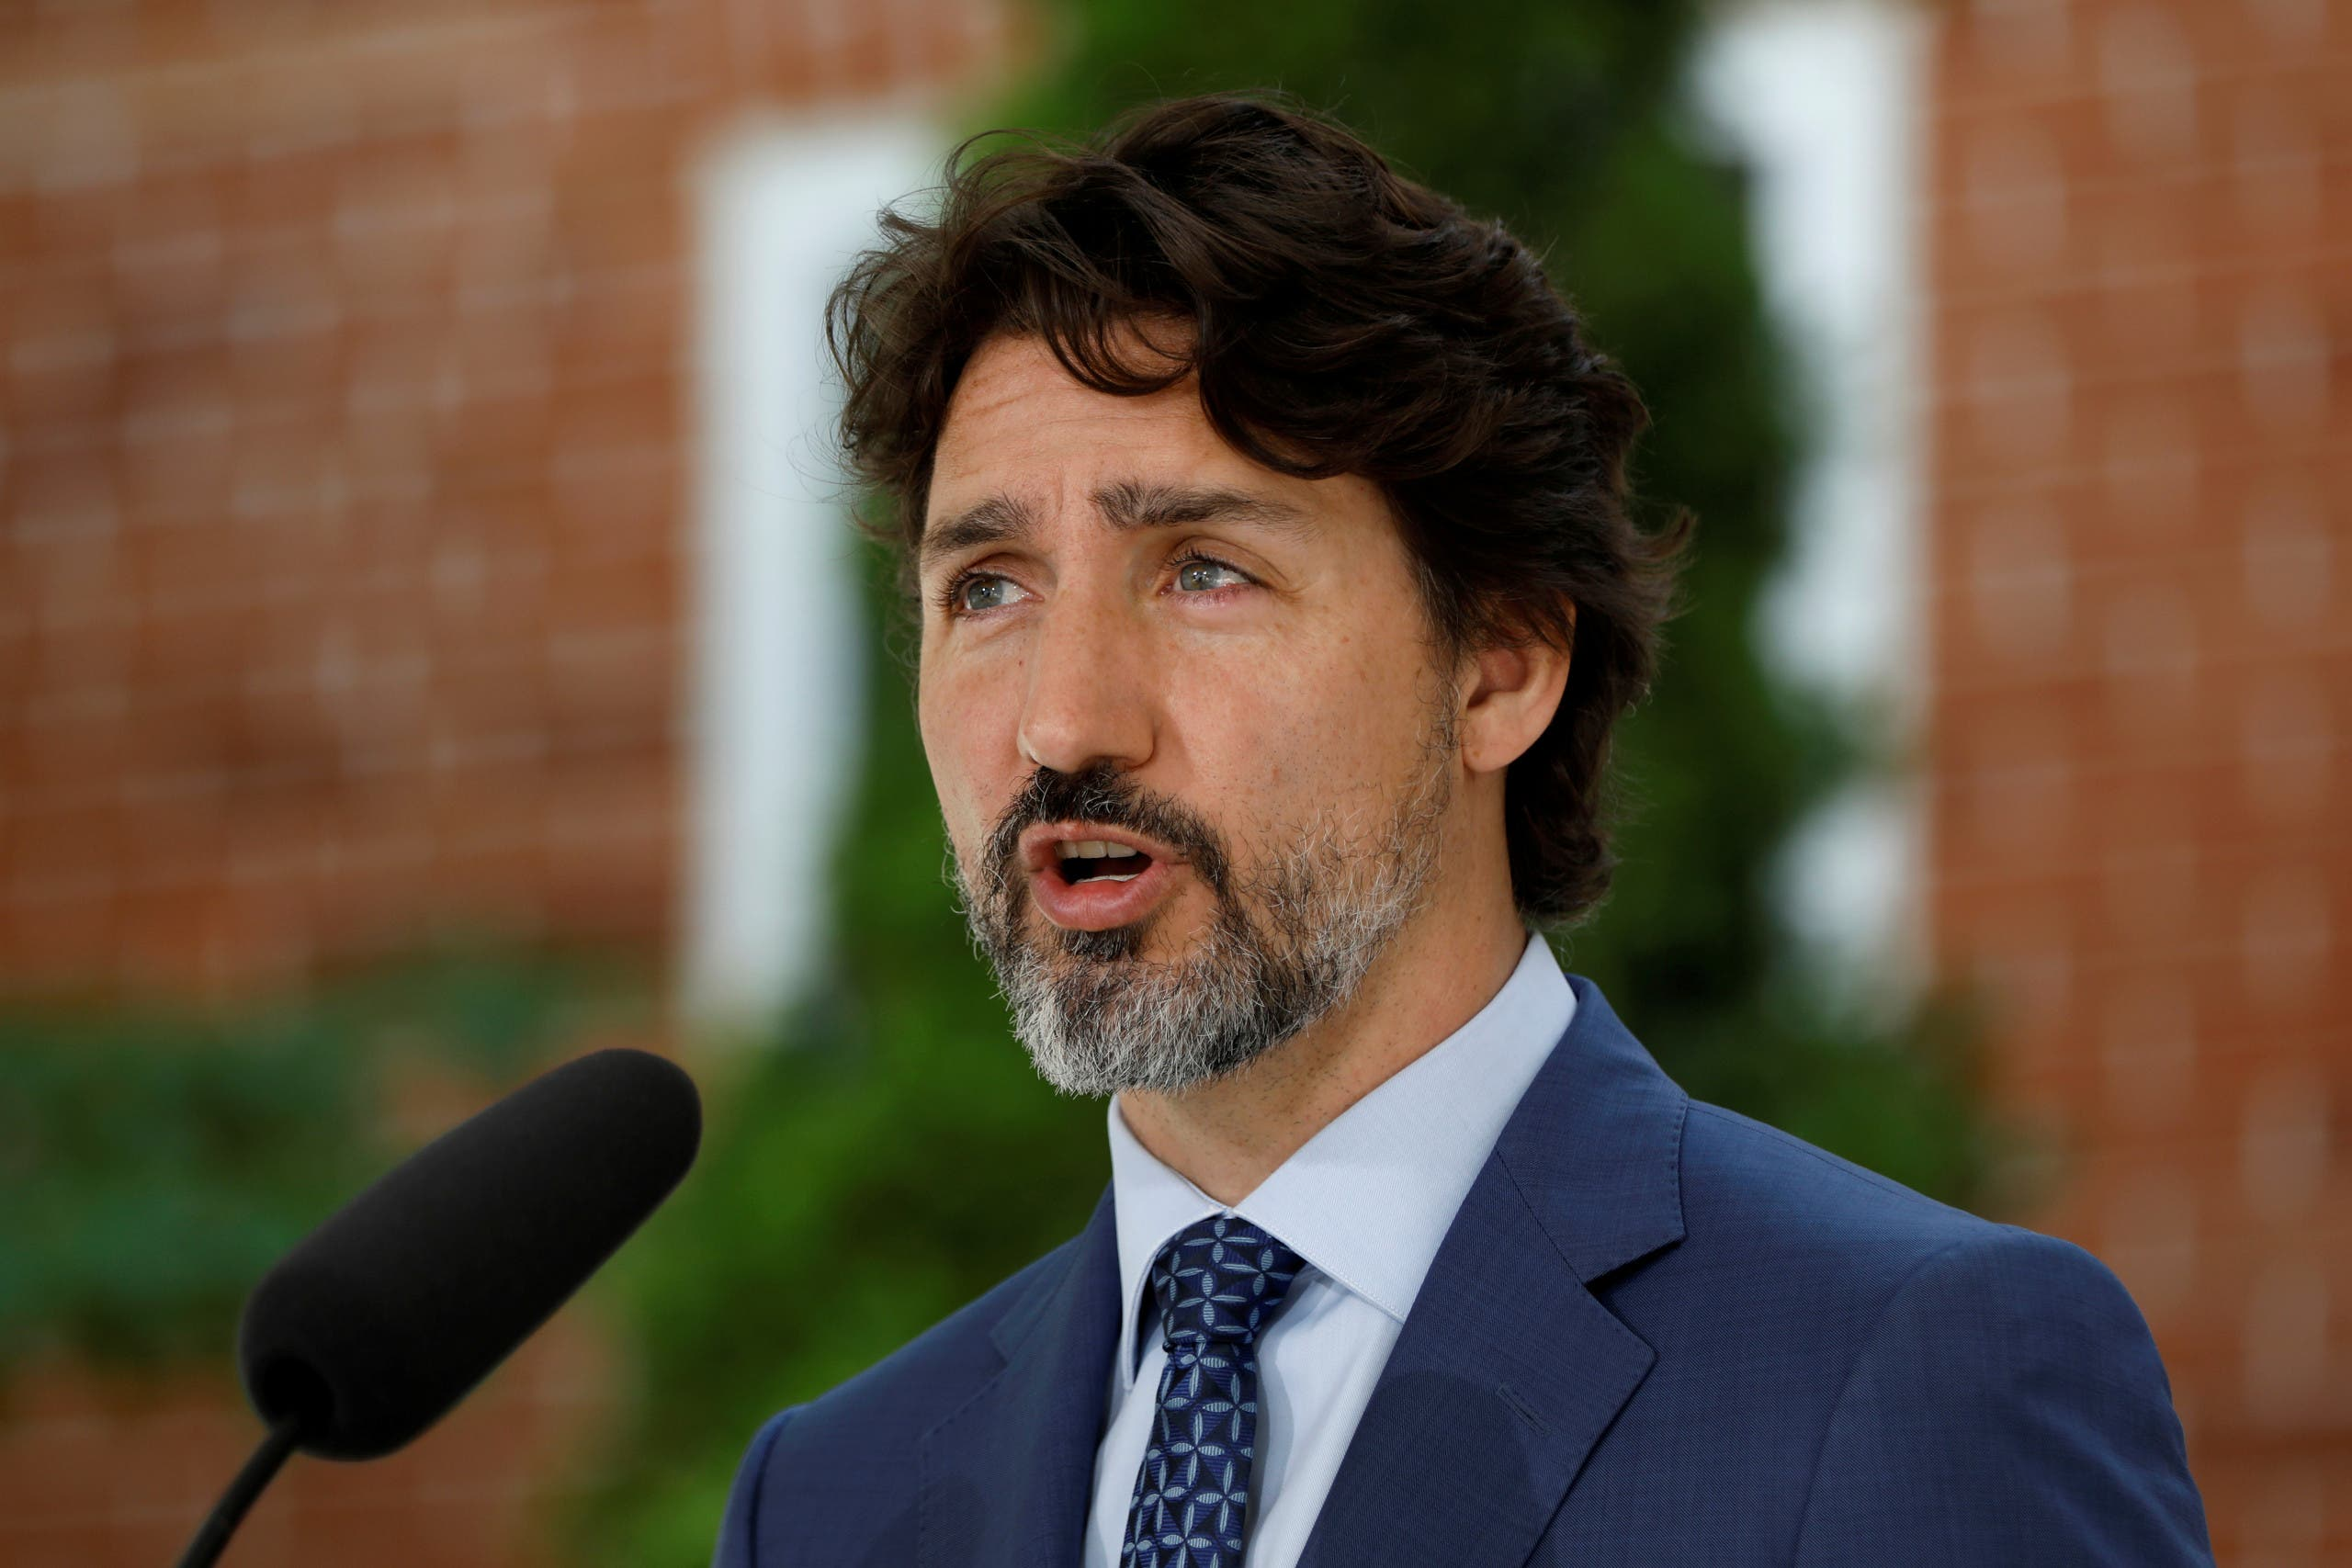 Canada's Prime Minister Justin Trudeau arrives for a news conference at Rideau Cottage, as efforts continue to help slow the spread of coronavirus disease (COVID-19), in Ottawa, Ontario, Canada June 22, 2020. (File photo: Reuters)